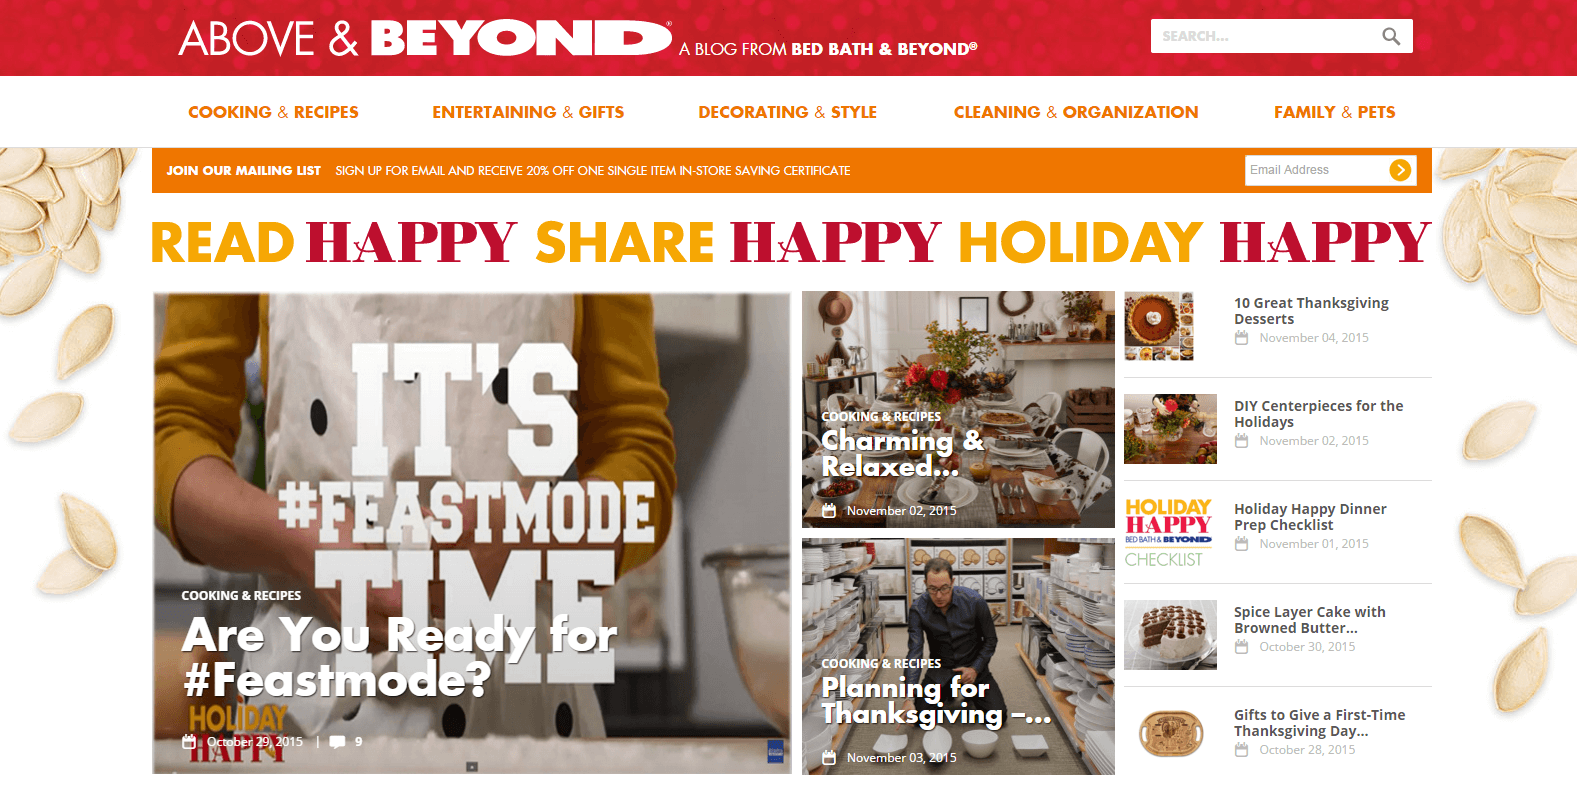 Above & Beyond is a blog with standout examples of shareable content.